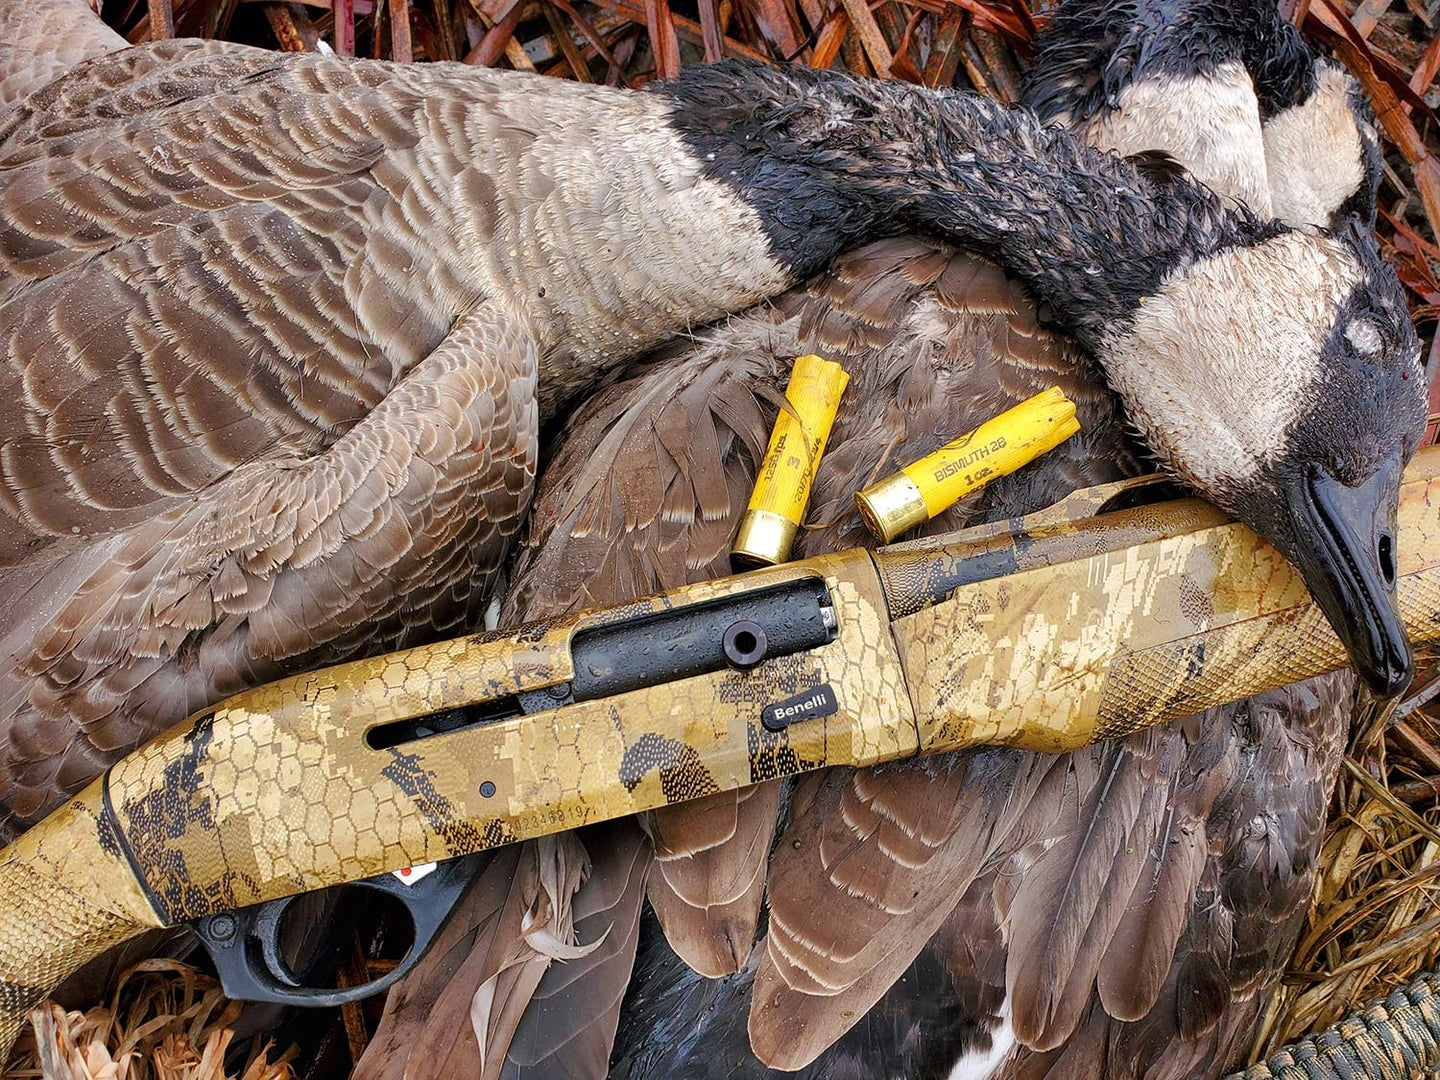 A waterfowl hunting shotgun next to a limit of geese.